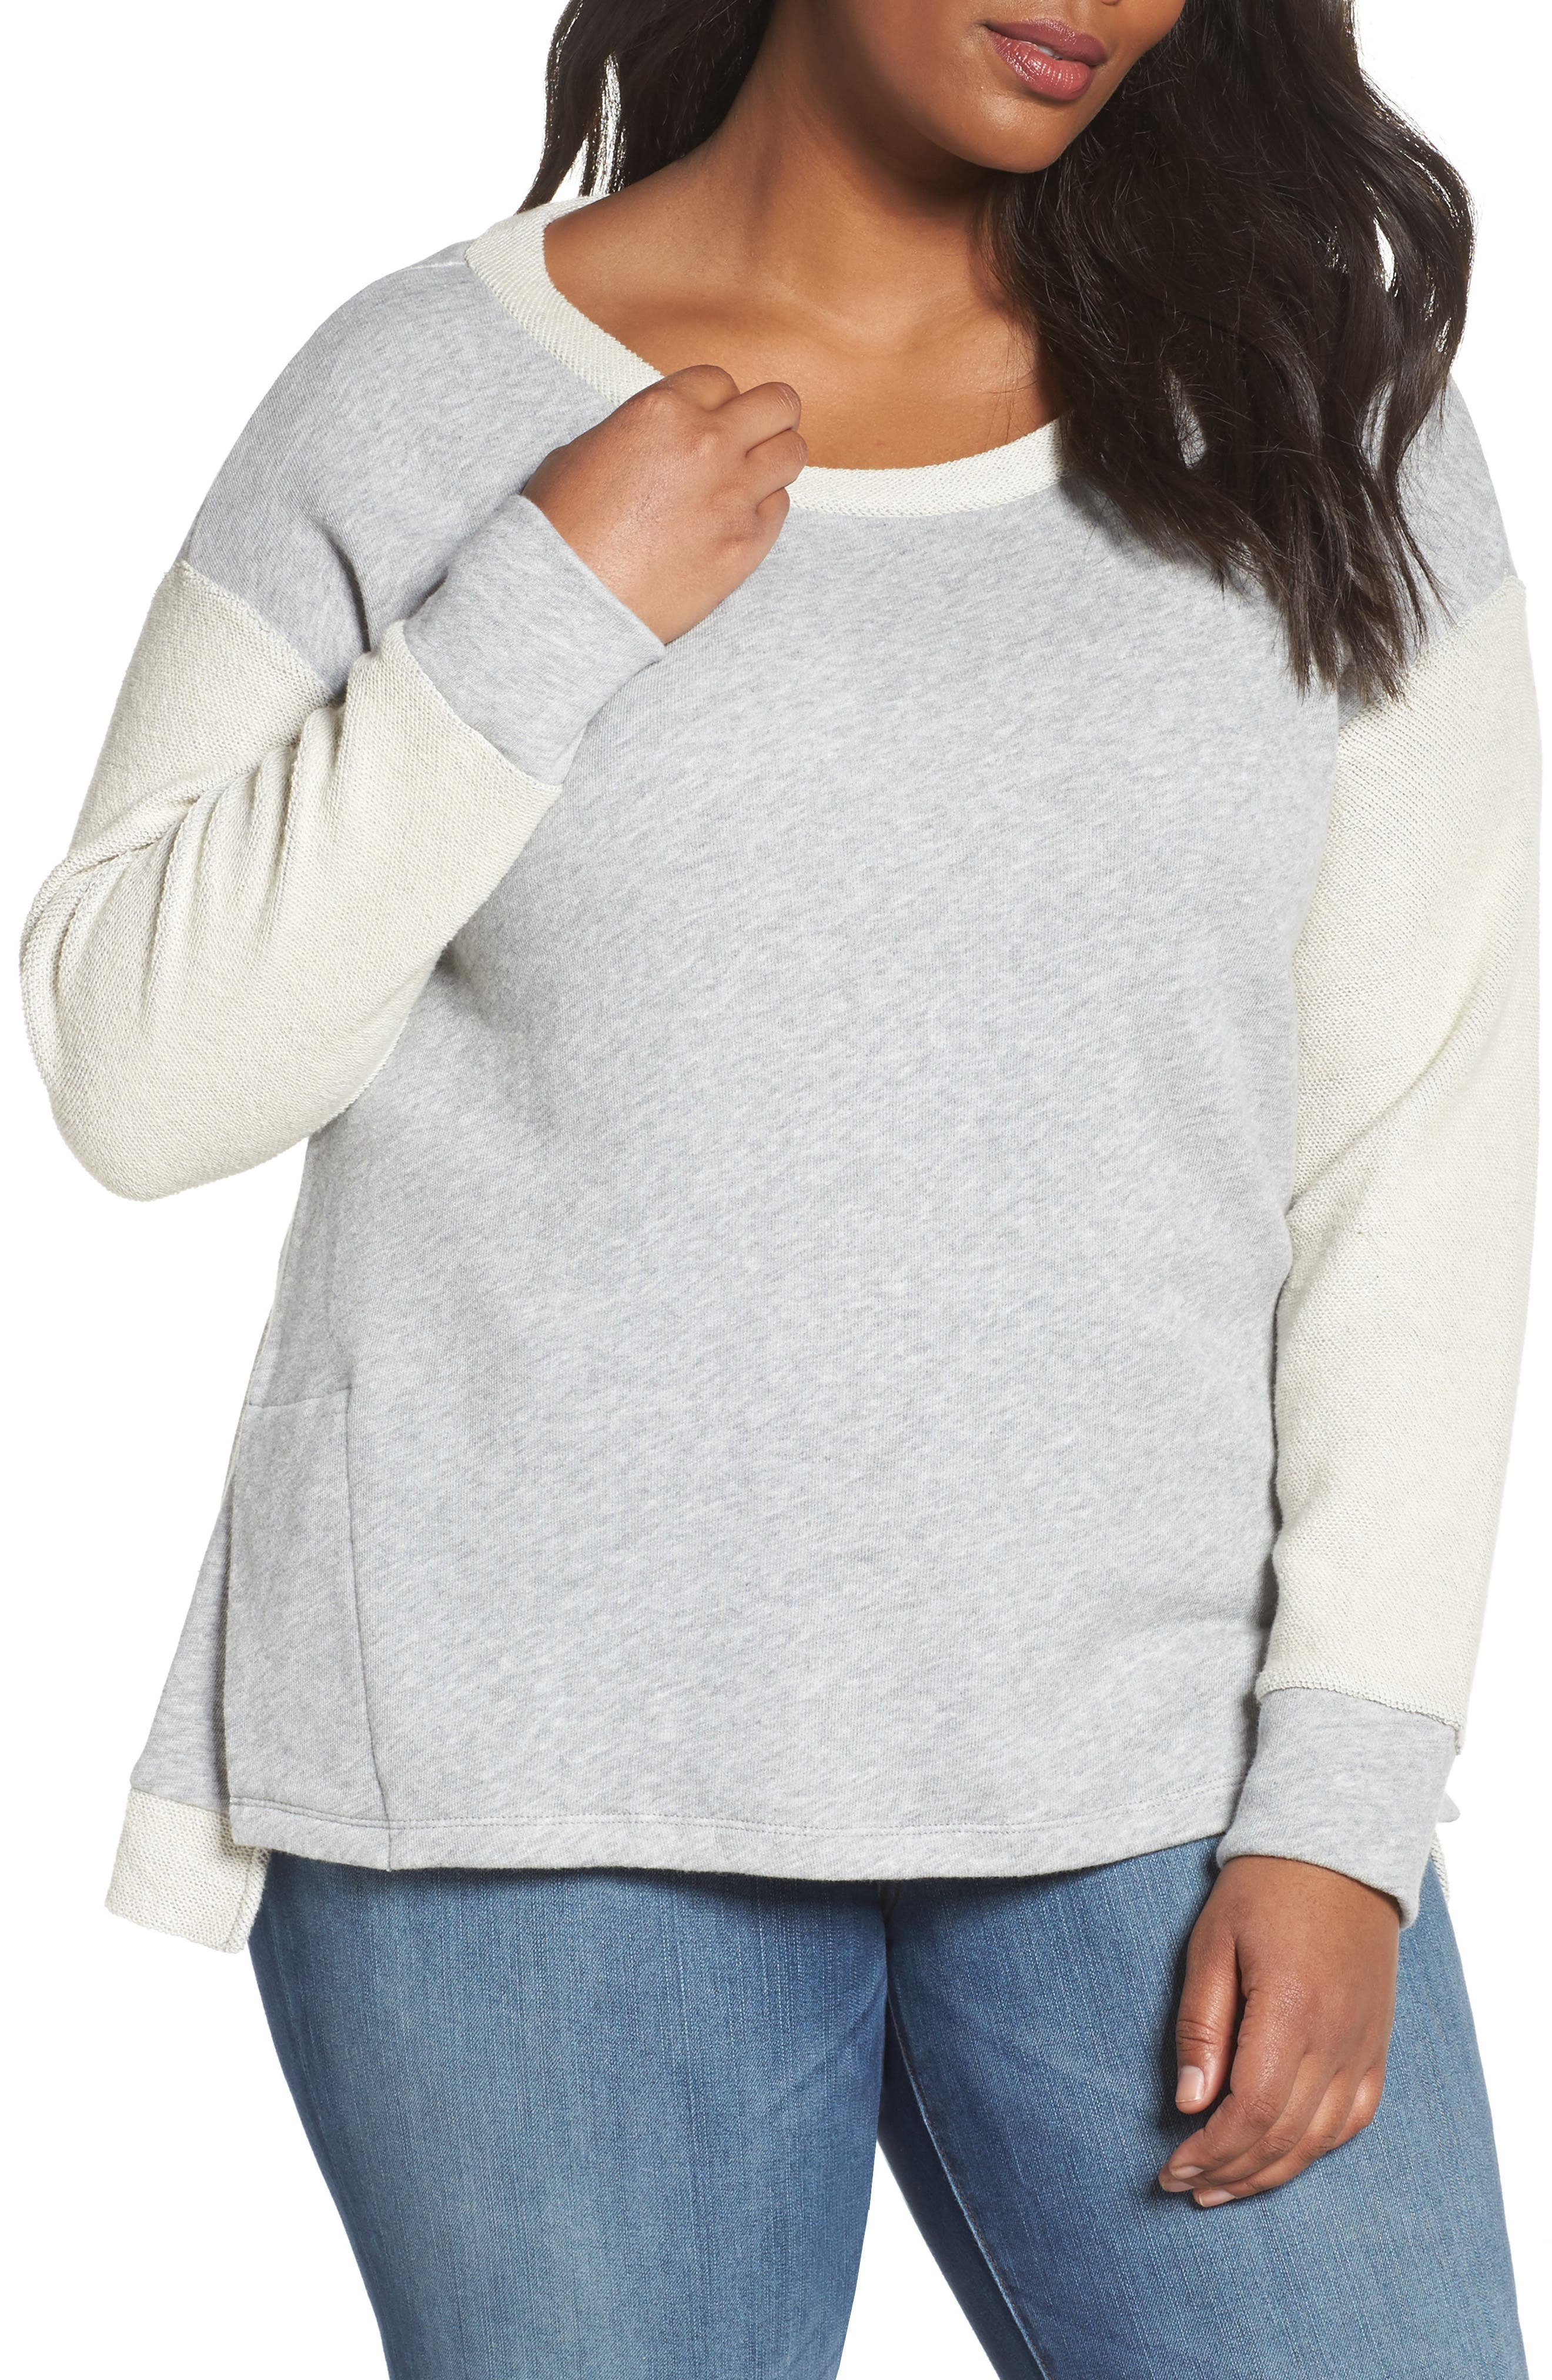 Relaxed Sweatshirt,                         Main,                         color, 030